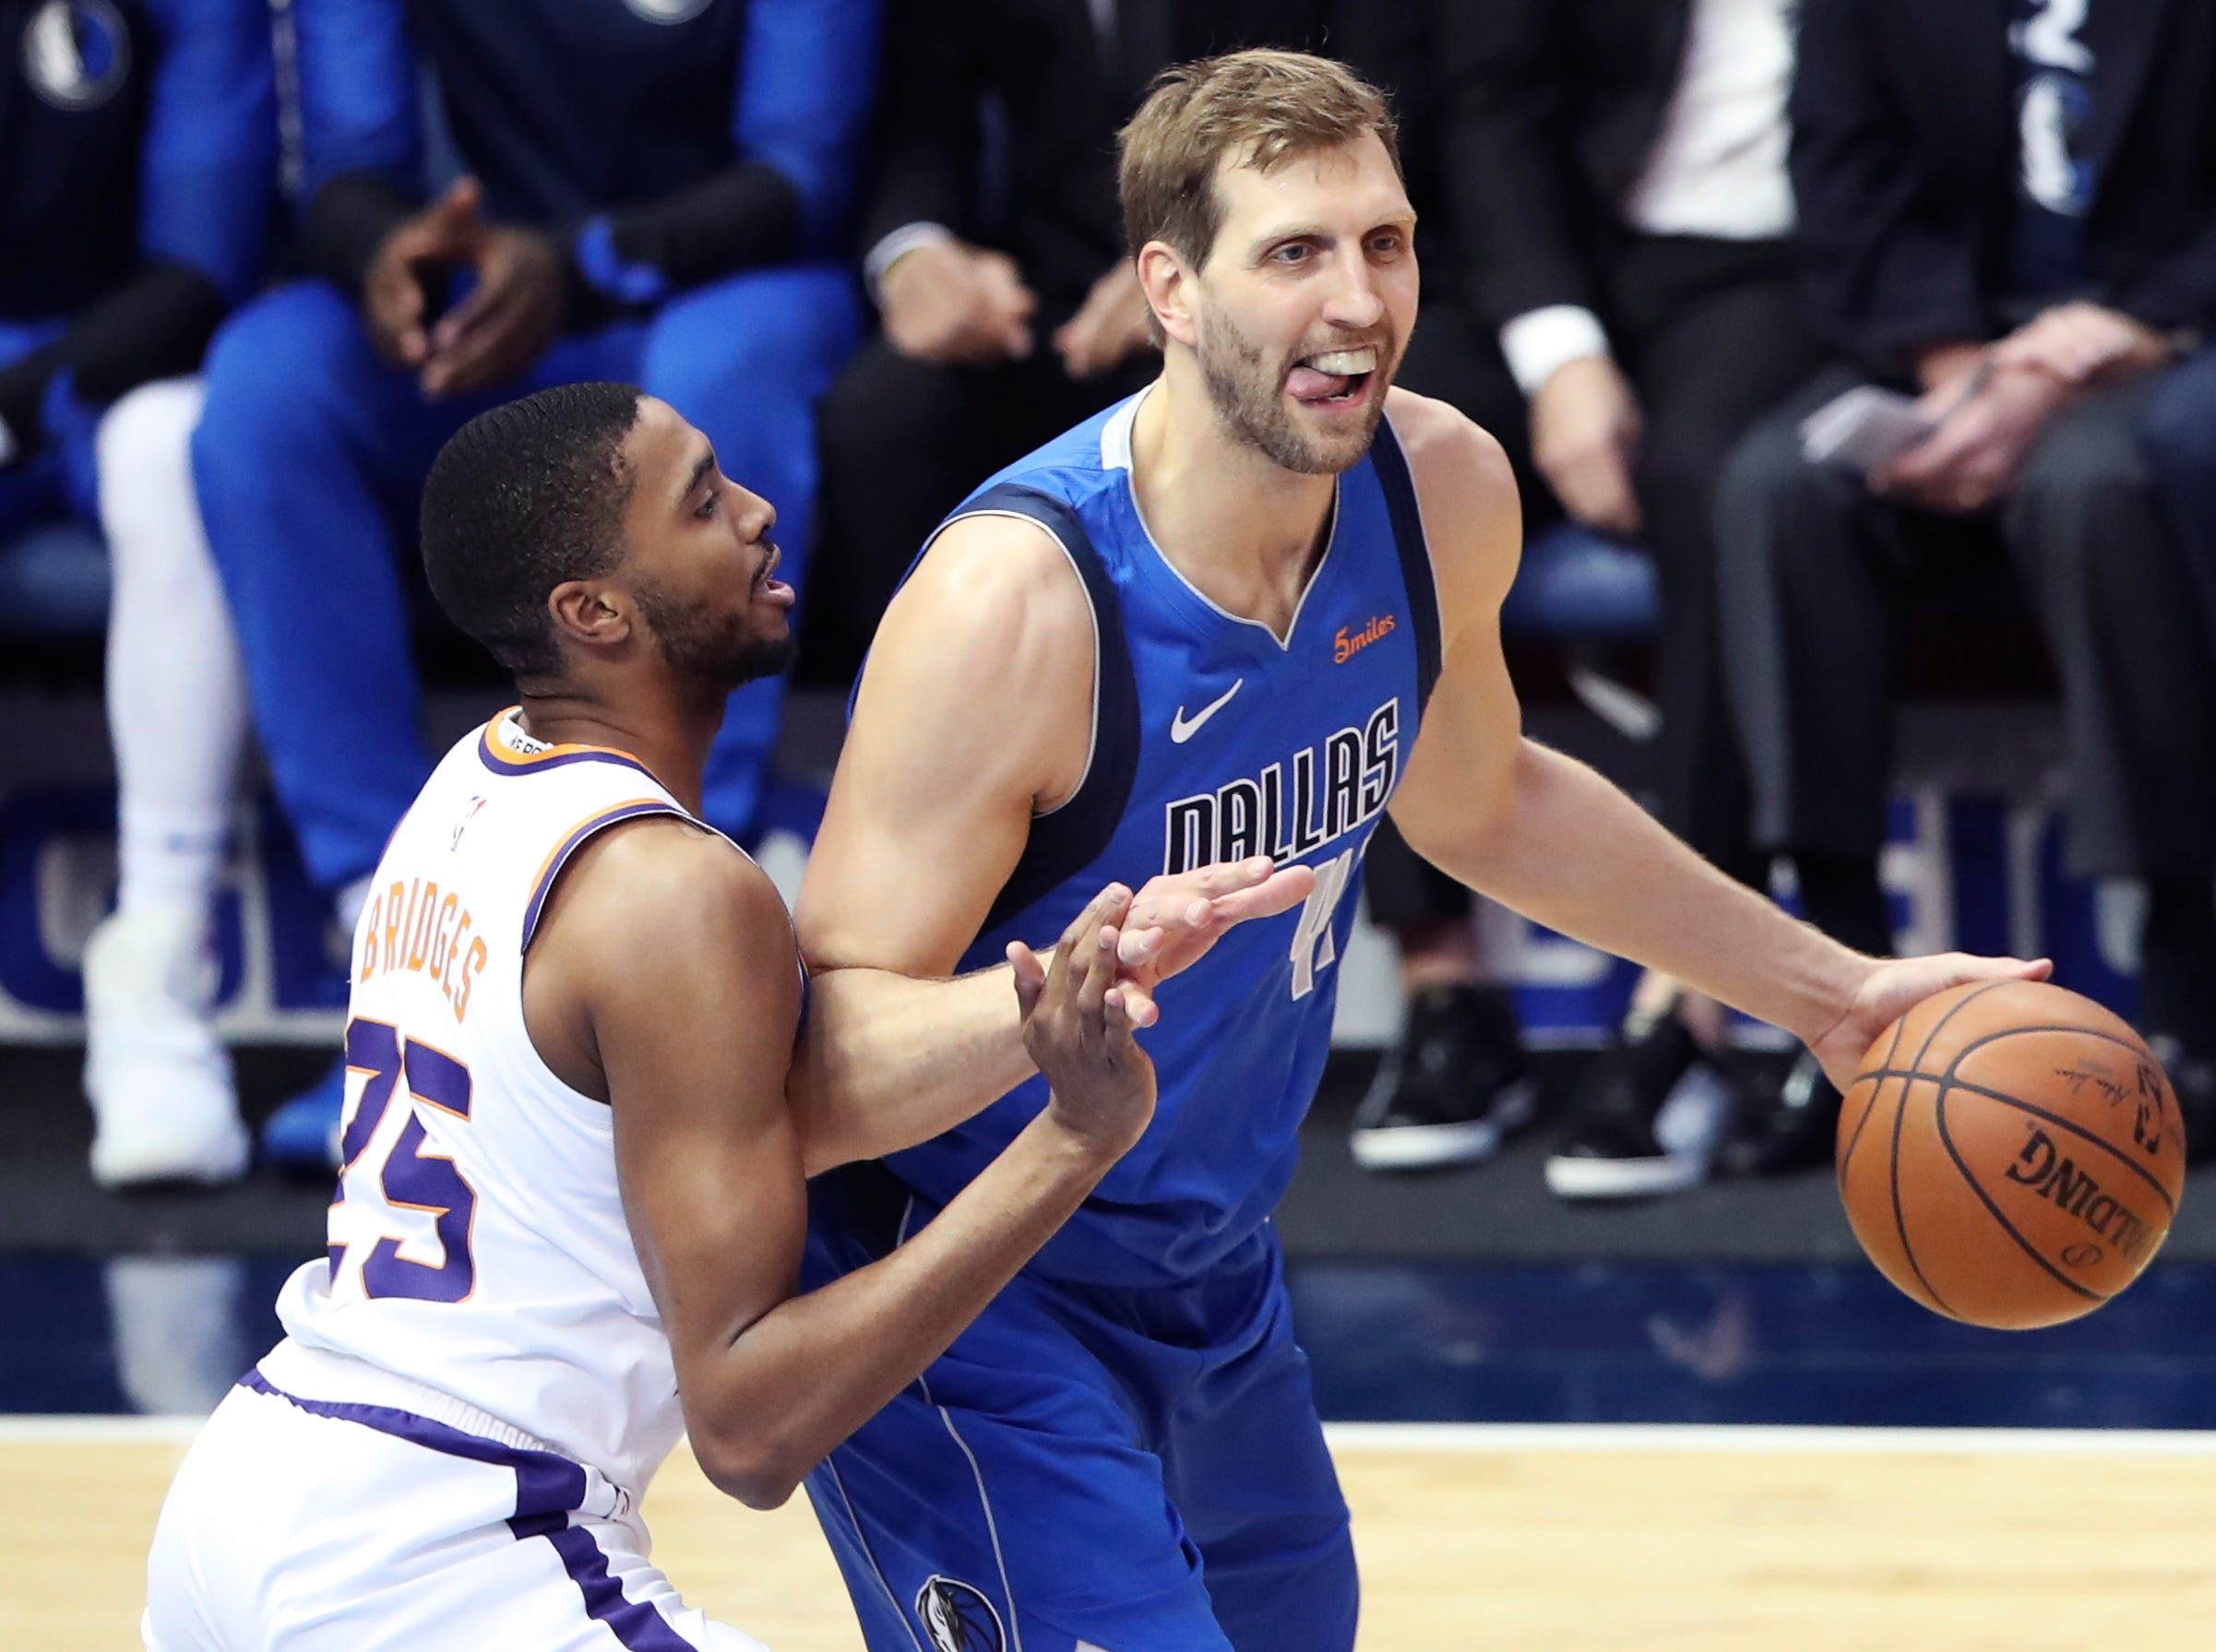 Apr 9, 2019; Dallas, TX, USA; Dallas Mavericks forward Dirk Nowitzki (41) looks to shoot as Phoenix Suns forward Mikal Bridges (25) defends during the first half at American Airlines Center. Mandatory Credit: Kevin Jairaj-USA TODAY Sports